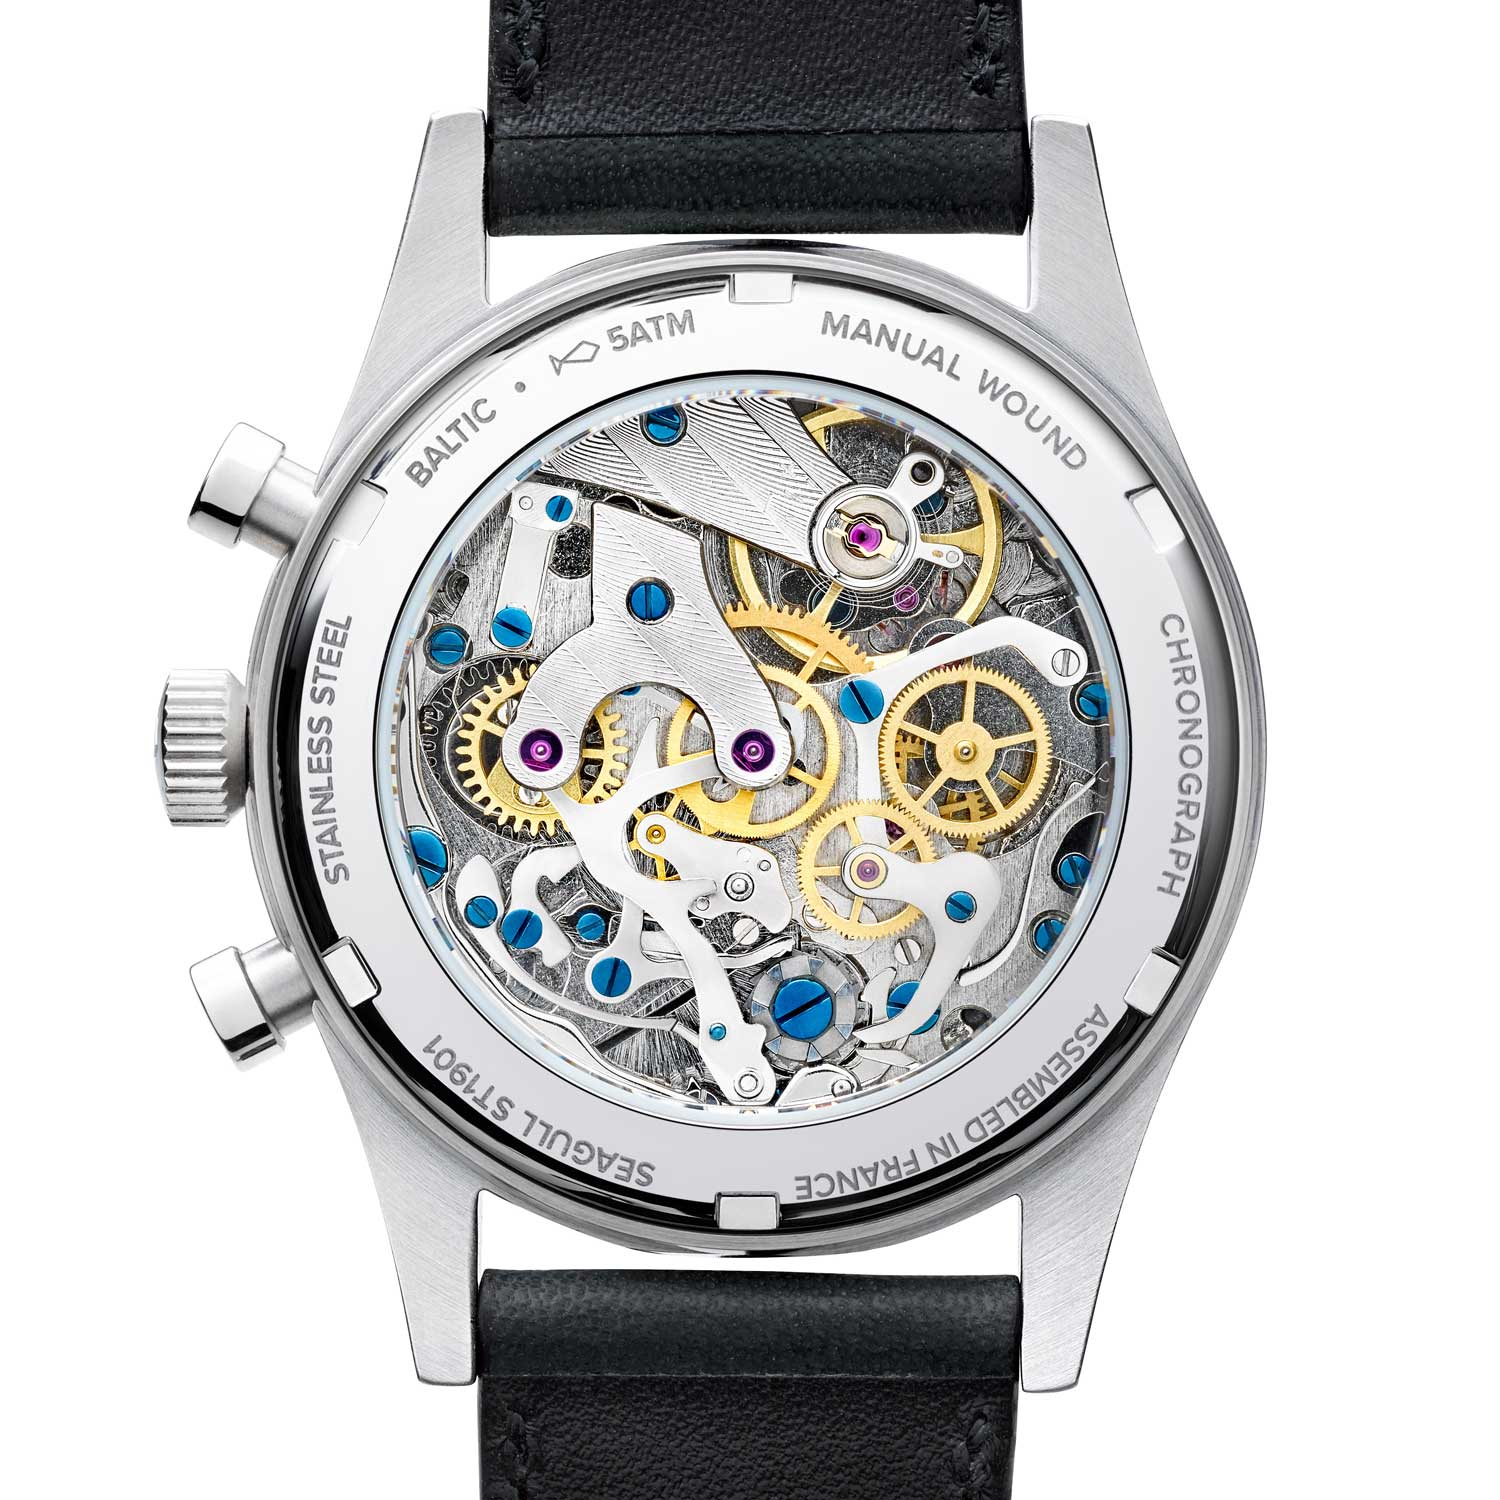 Seagull ST 19 manual winding chronograph